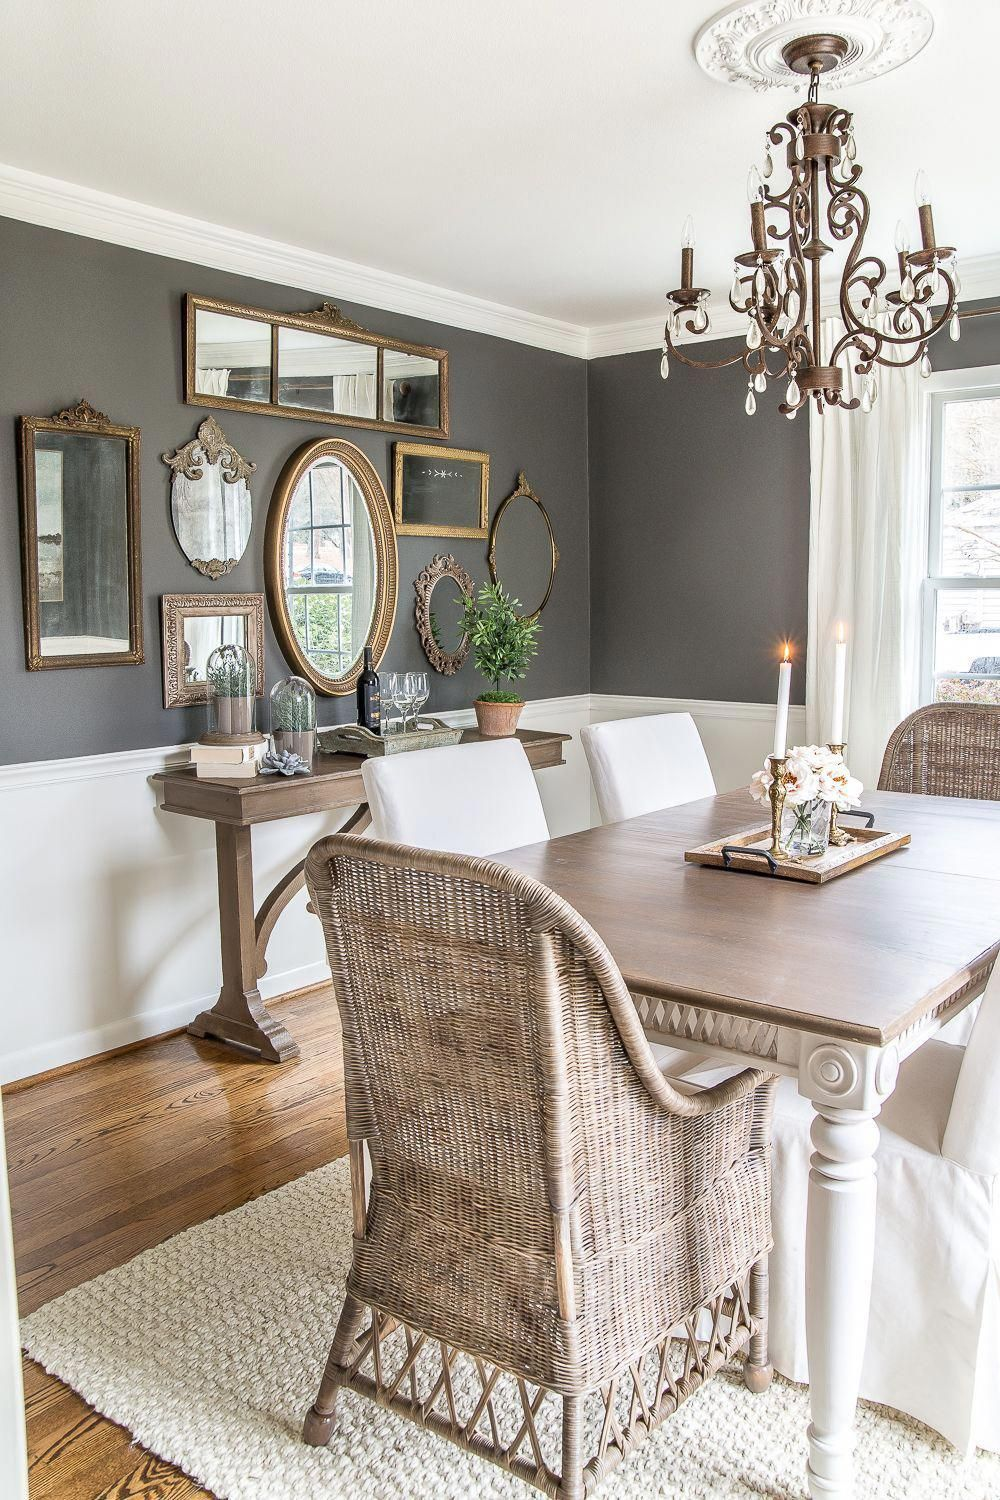 Christmas Decorating Ideas For Dining Room Buffet Diningroomdecorating Eclectic Dining Room Farmhouse Dining Rooms Decor Dining Room Wall Decor